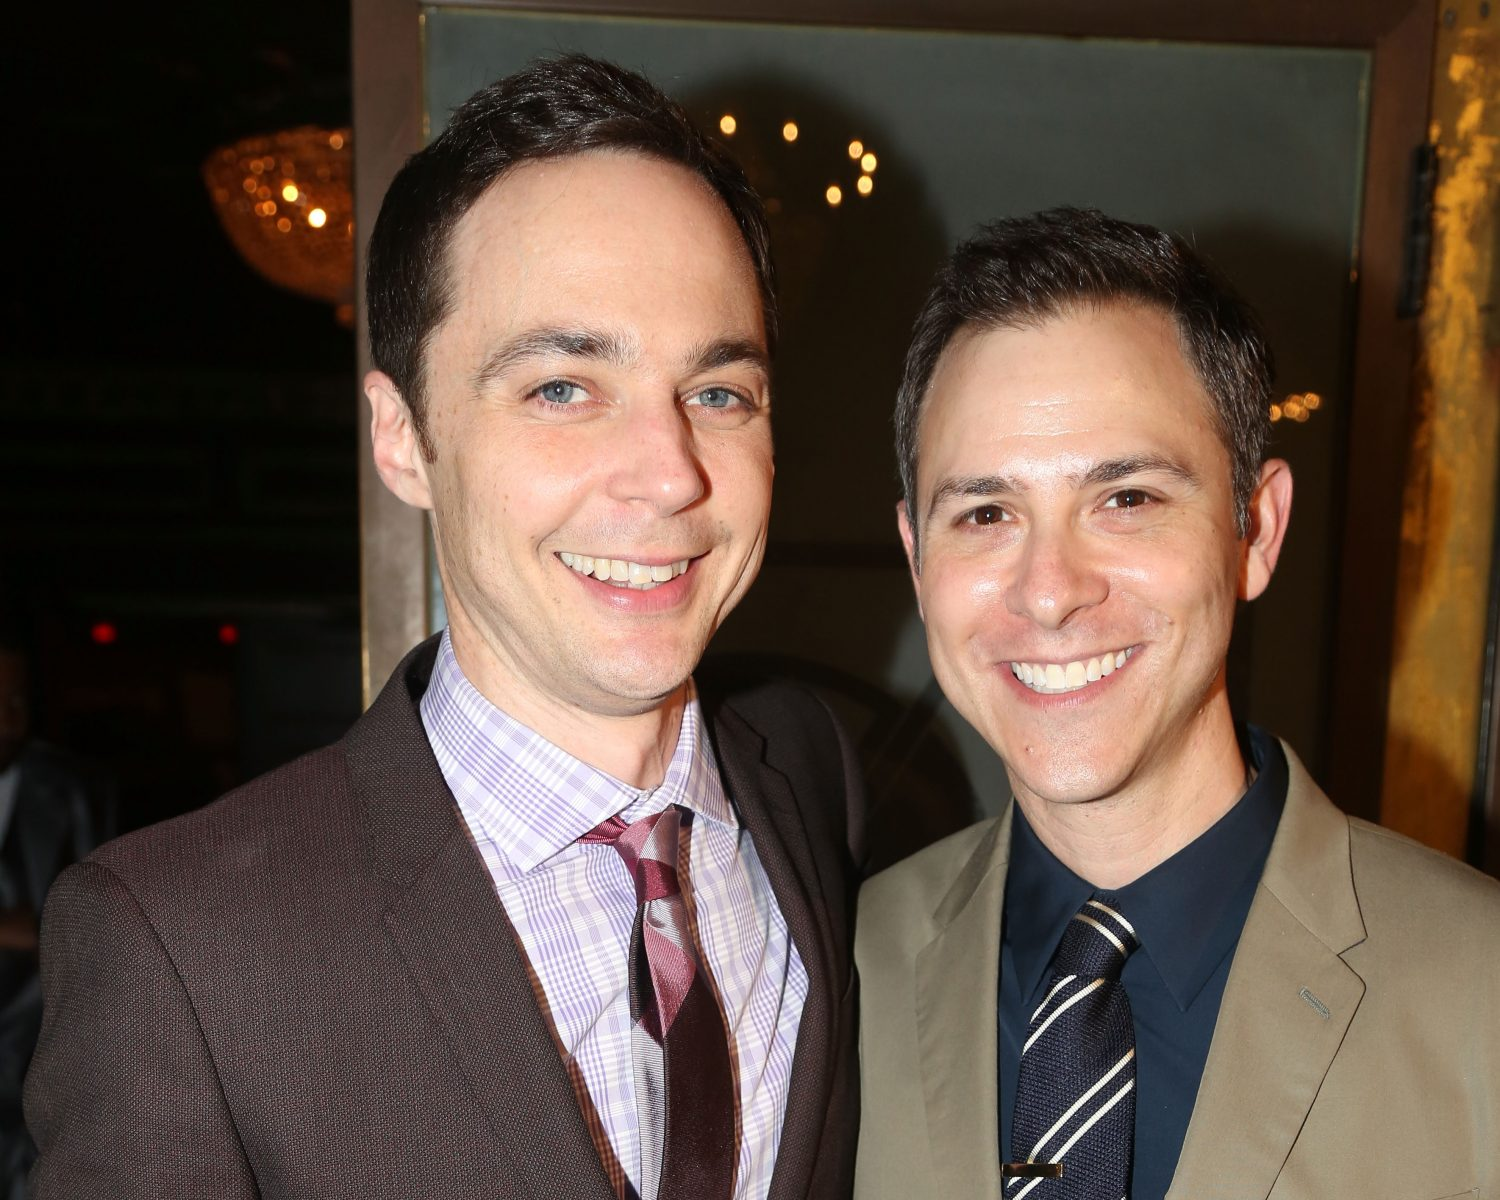 Big Bang Theory's Jim Parsons Marries Todd Spiewak: First